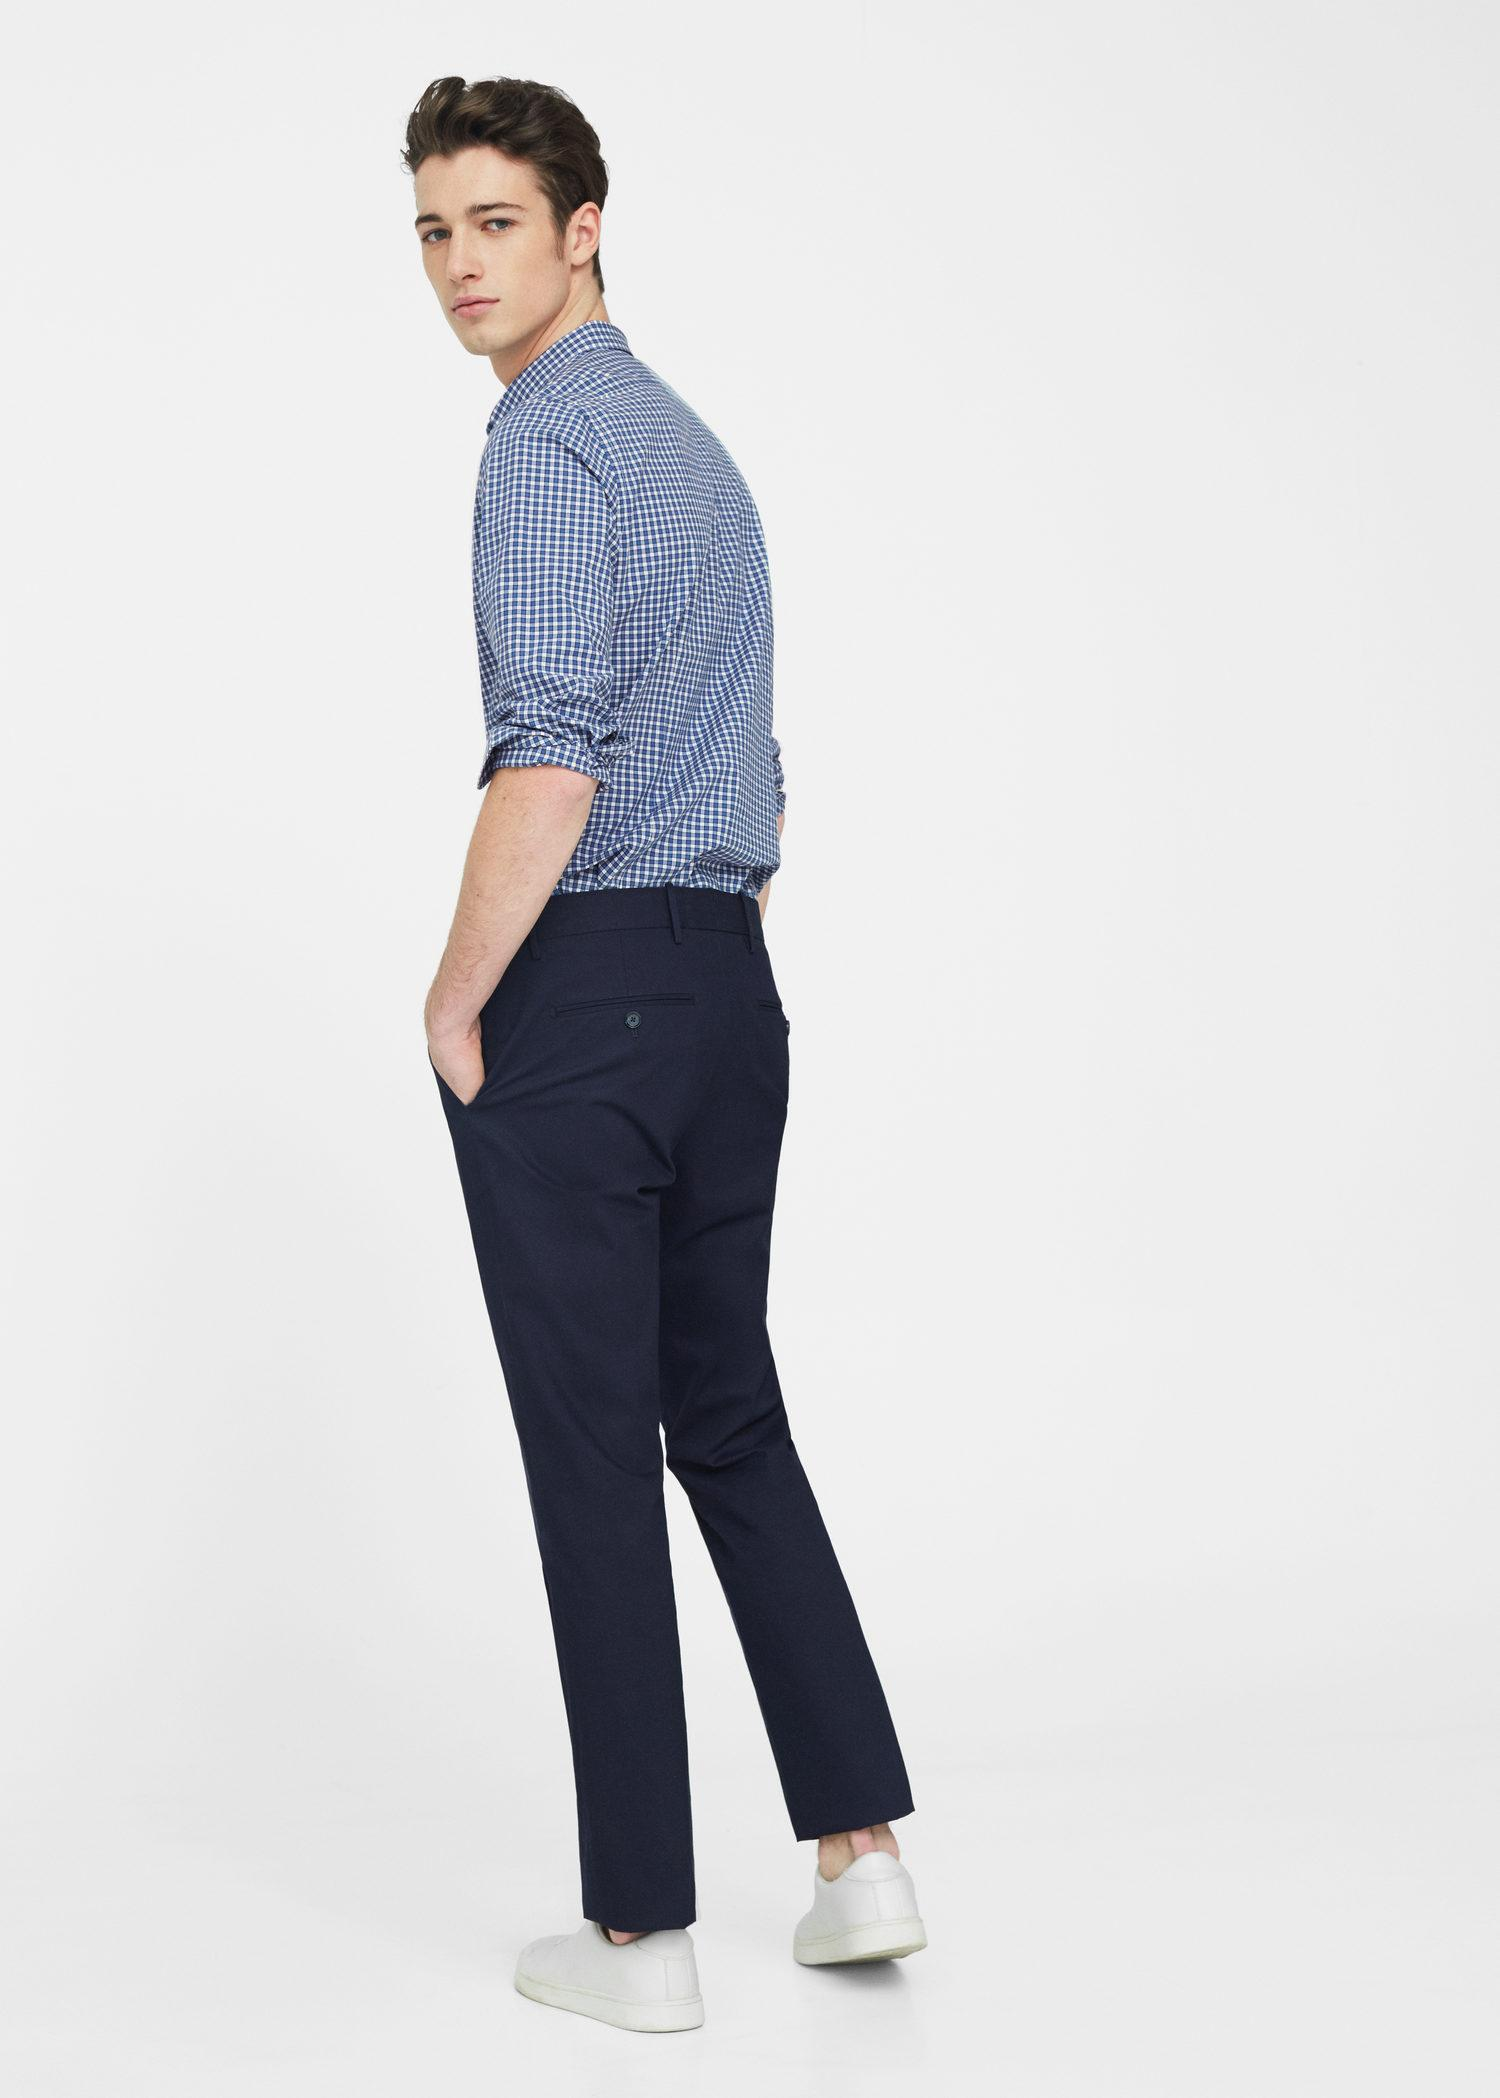 Mango Cotton Slim-fit Gingham Check Shirt in Navy (Blue) for Men